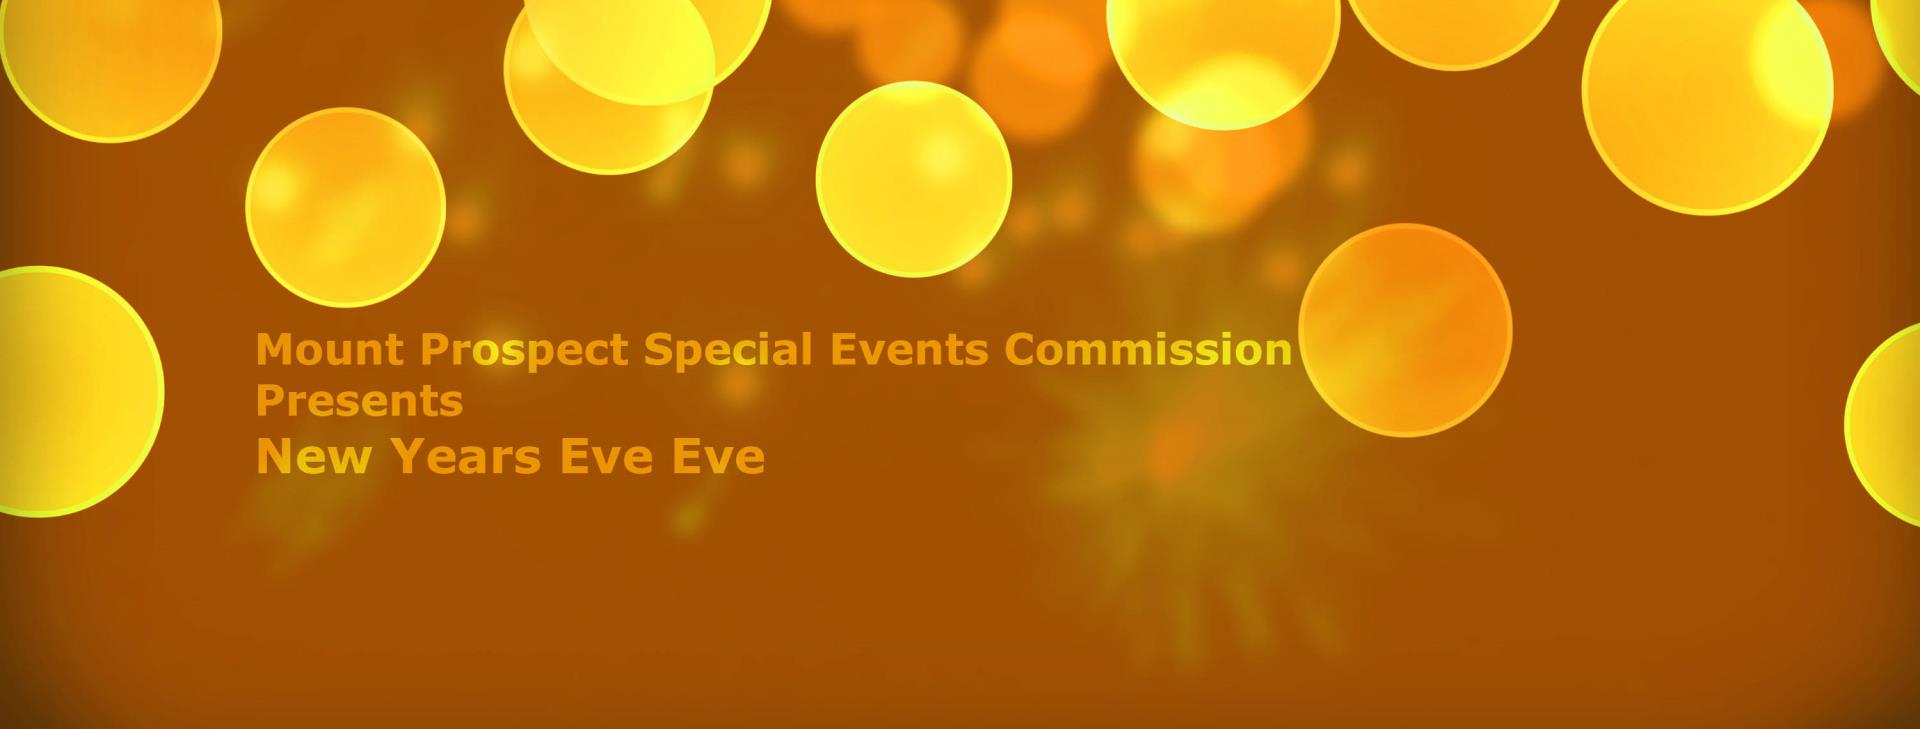 NYE Eve Special Events